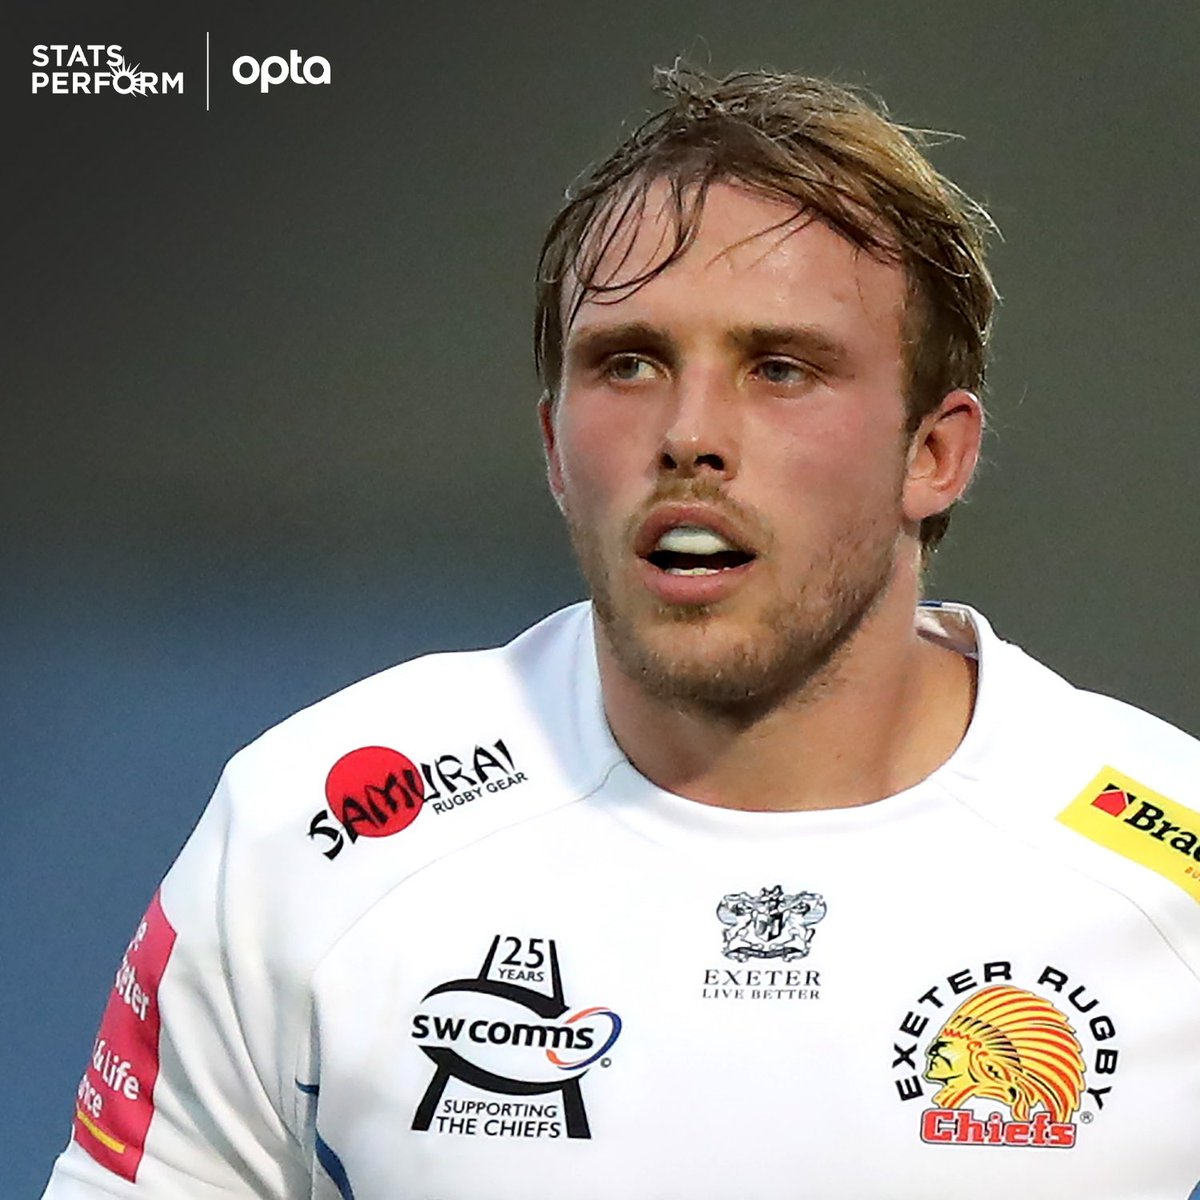 99 - Jonny Gray completed 18/18 tackles in @ExeterChiefs' victory over Northampton, no other player made as many without missing in the Champions Cup quarter-finals; in the competition overall this season, Jonny Gray has made 99 tackles and missed just one. Problems. https://t.co/gn8BAXWSNk